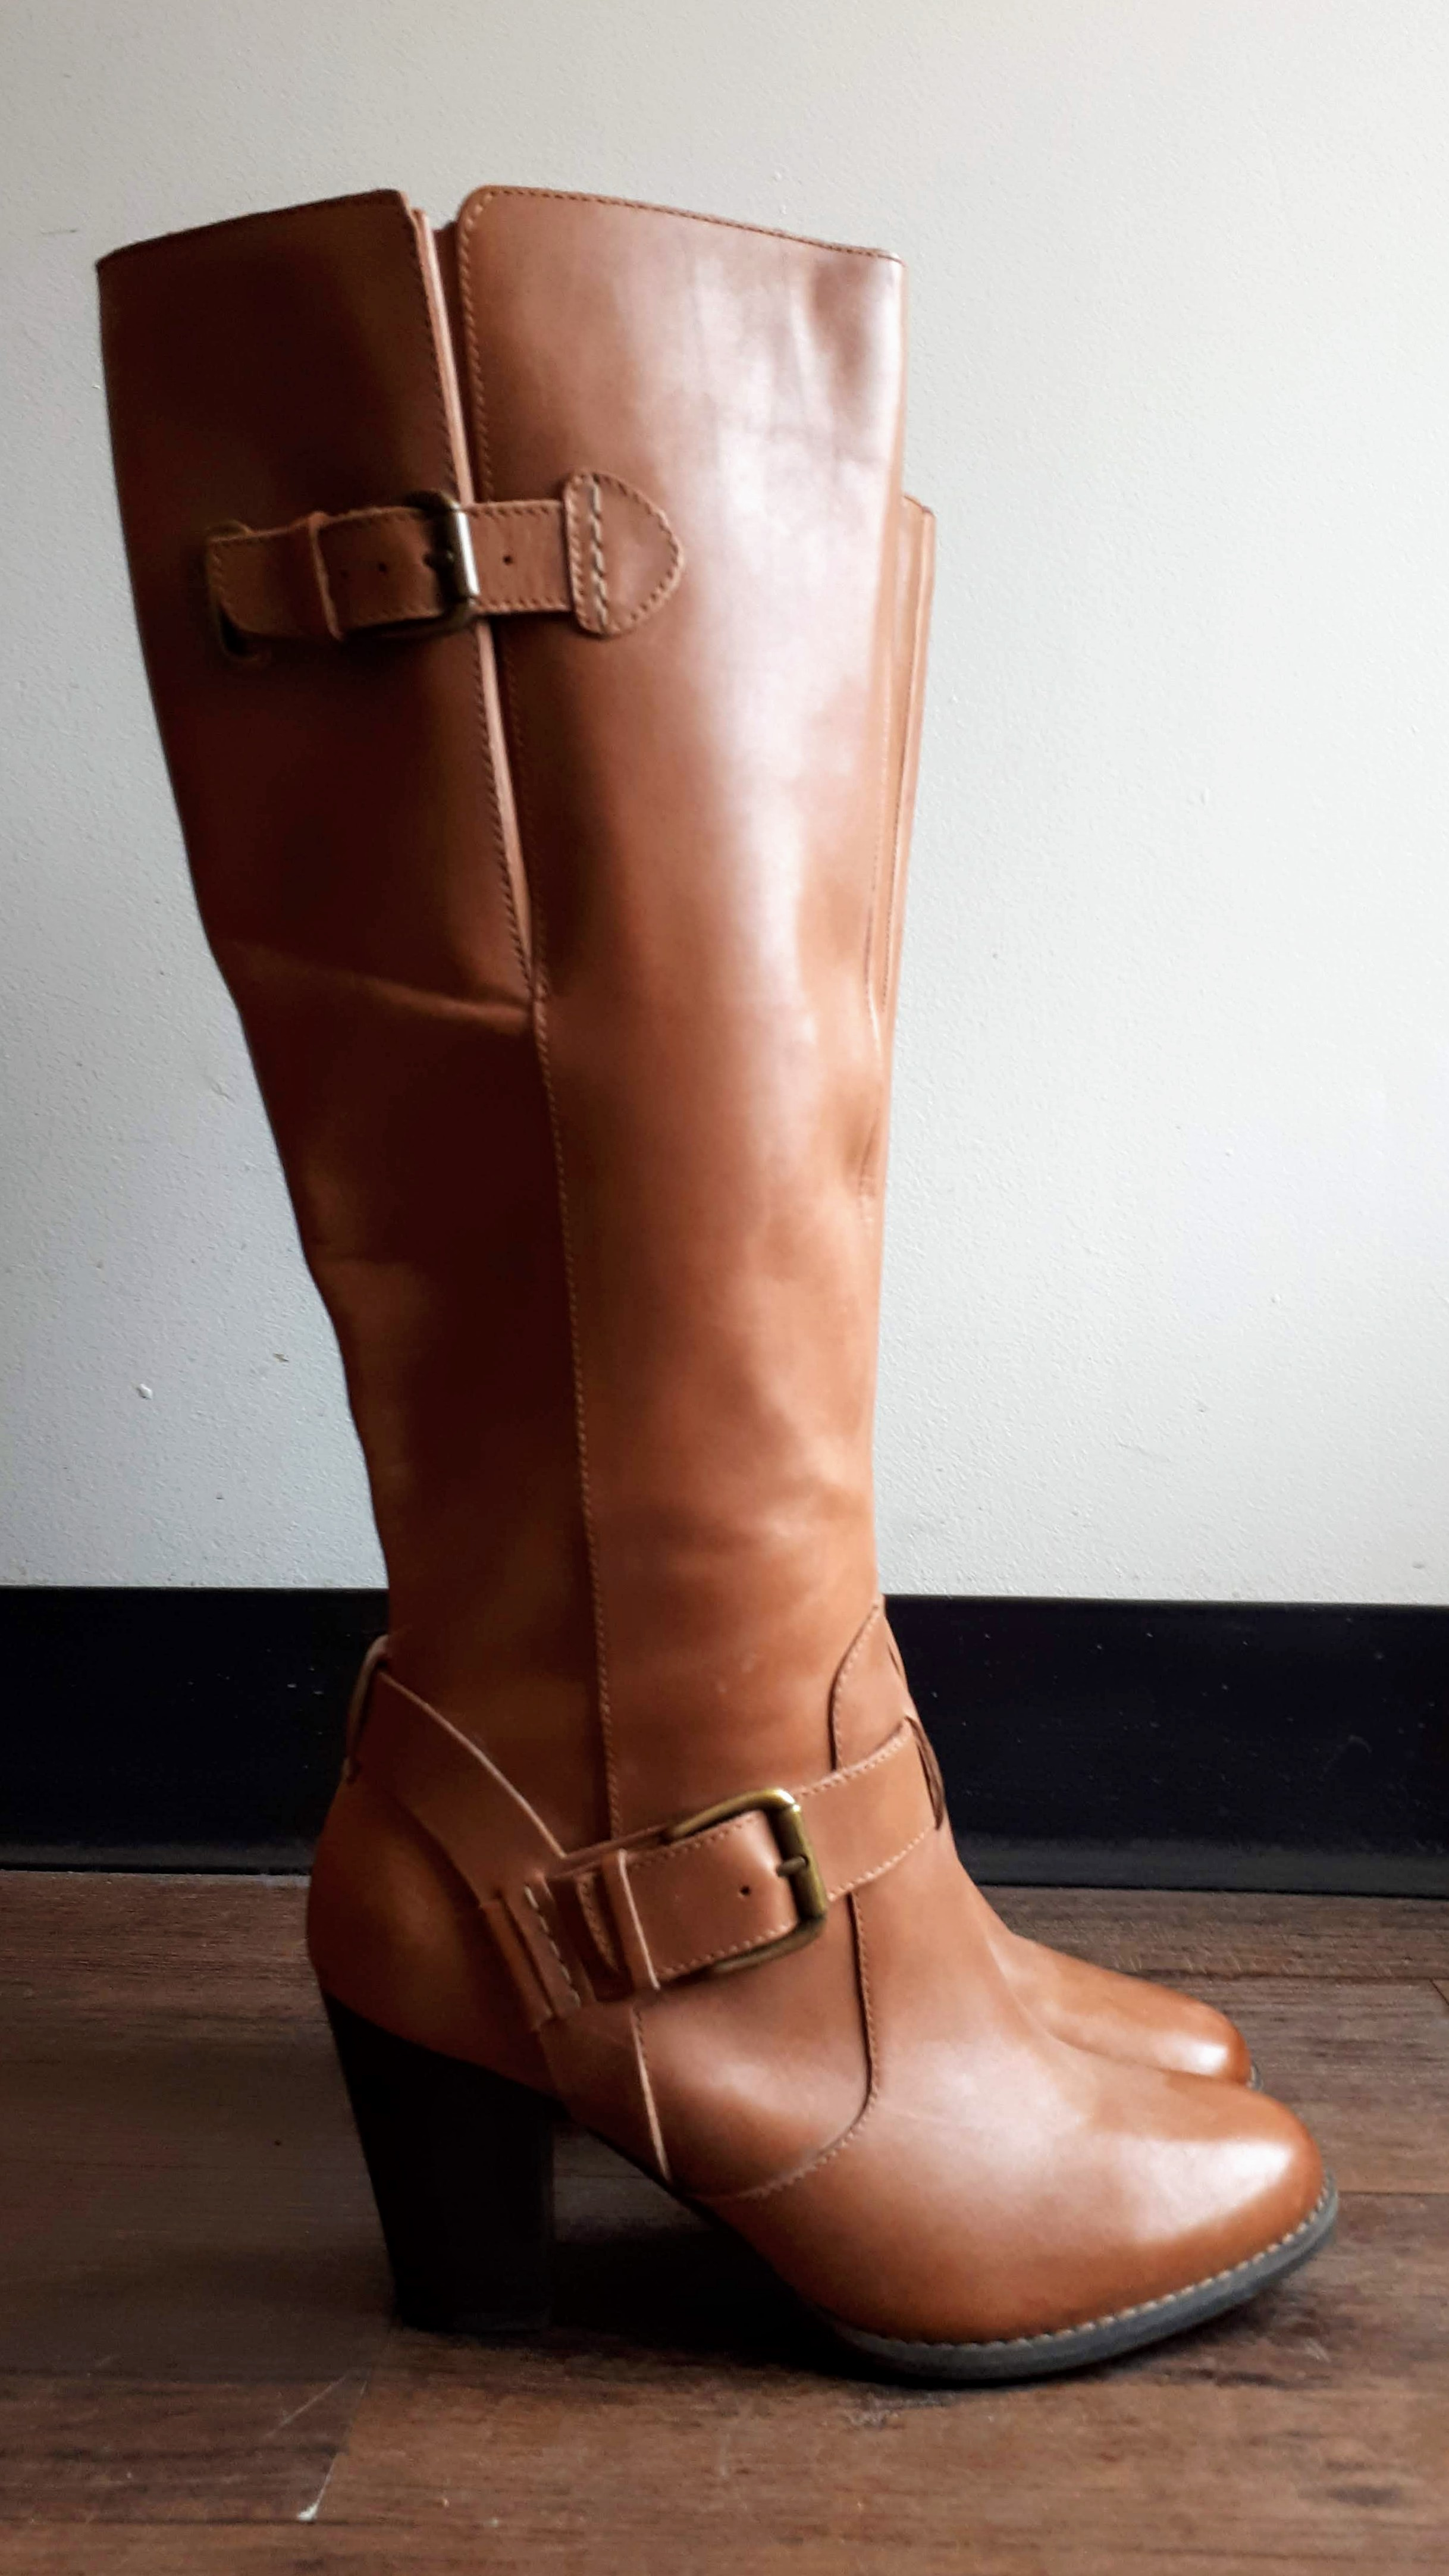 Clarks boots; S7, $95